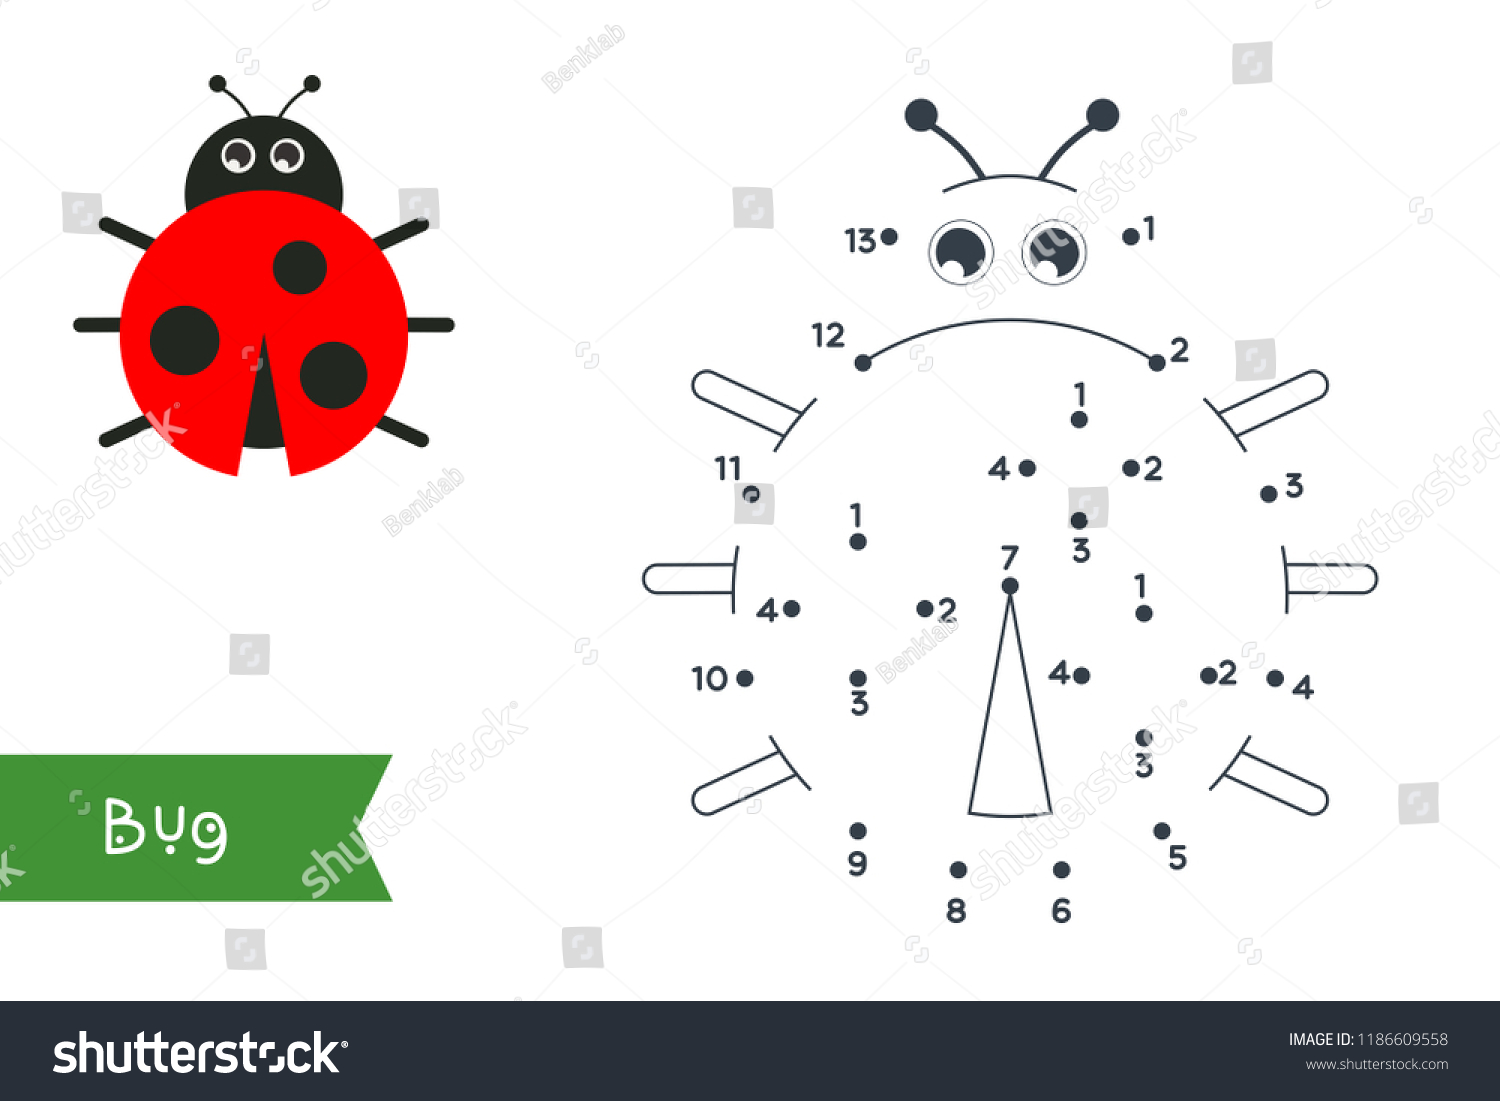 Connect Dots Draw Color Animal Vector Stock Vector Royalty Free ...